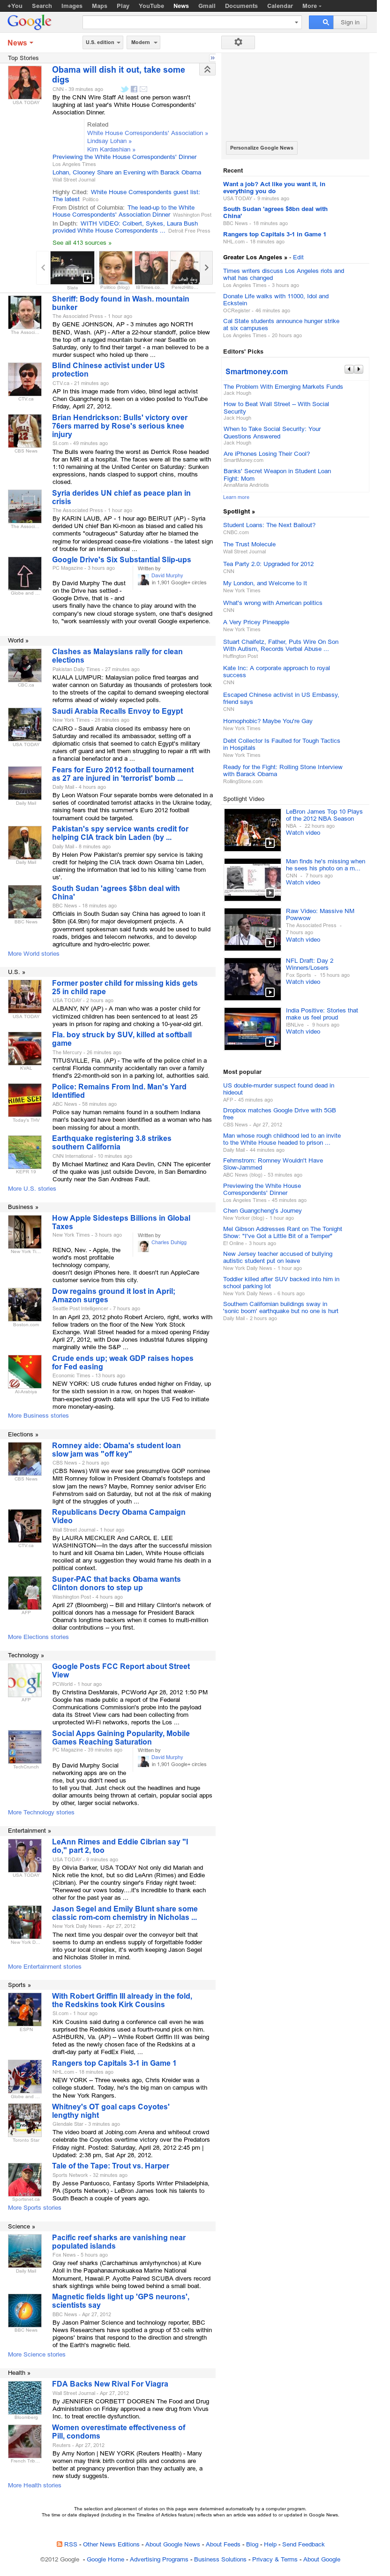 Google News at Saturday April 28, 2012, 10:09 p.m. UTC